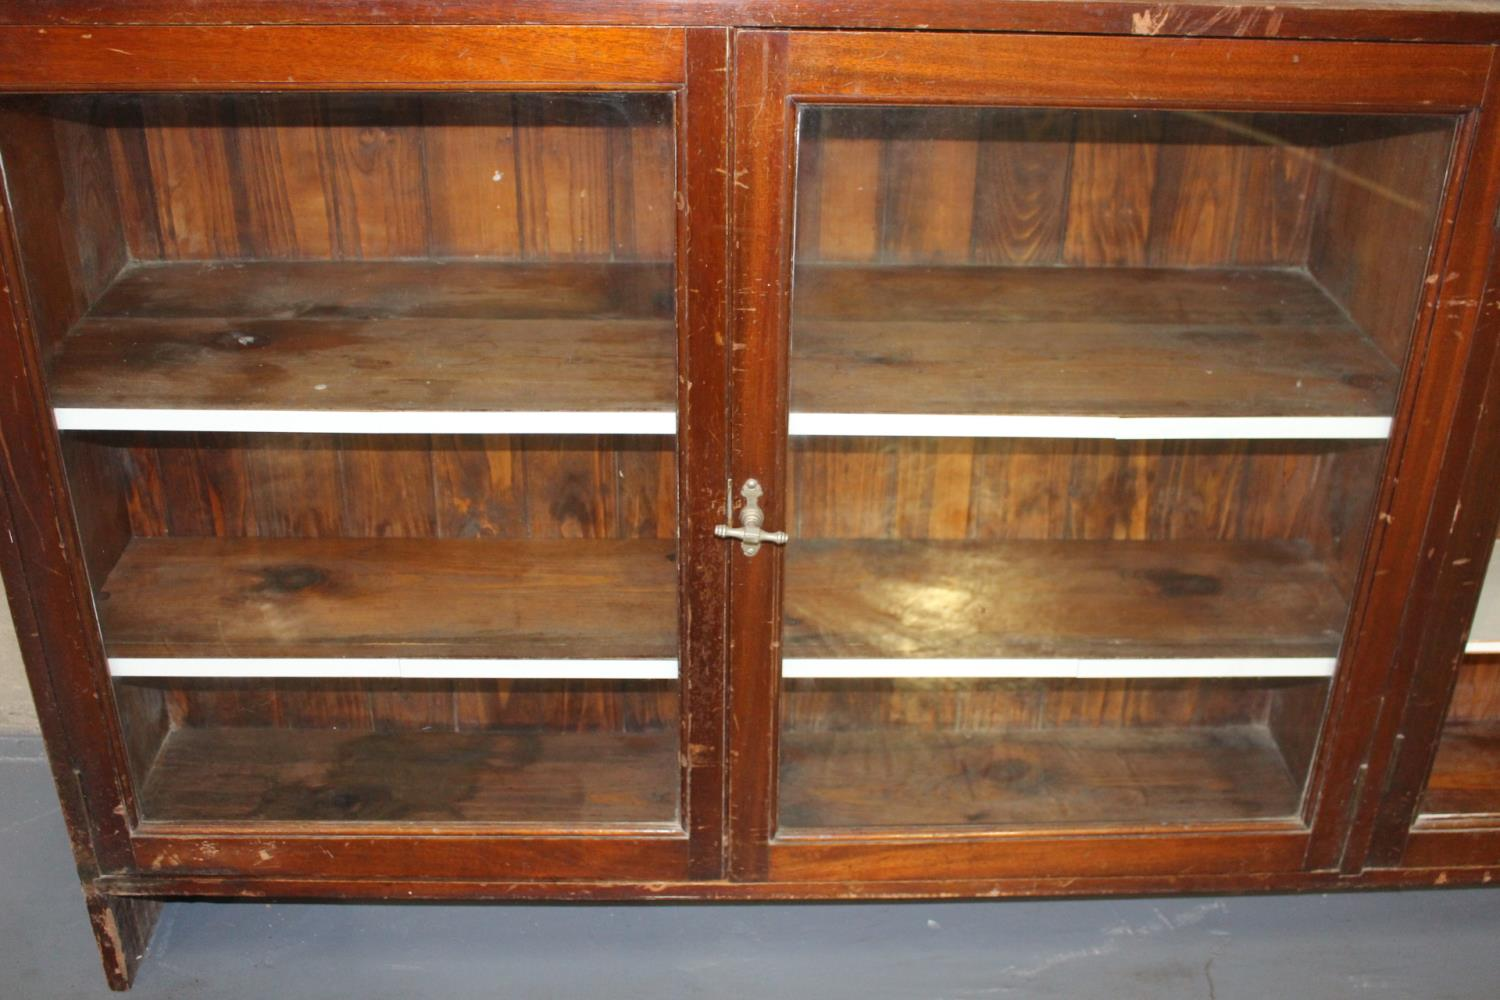 19th C. Mahogany two piece shop display cabinet - Image 3 of 3